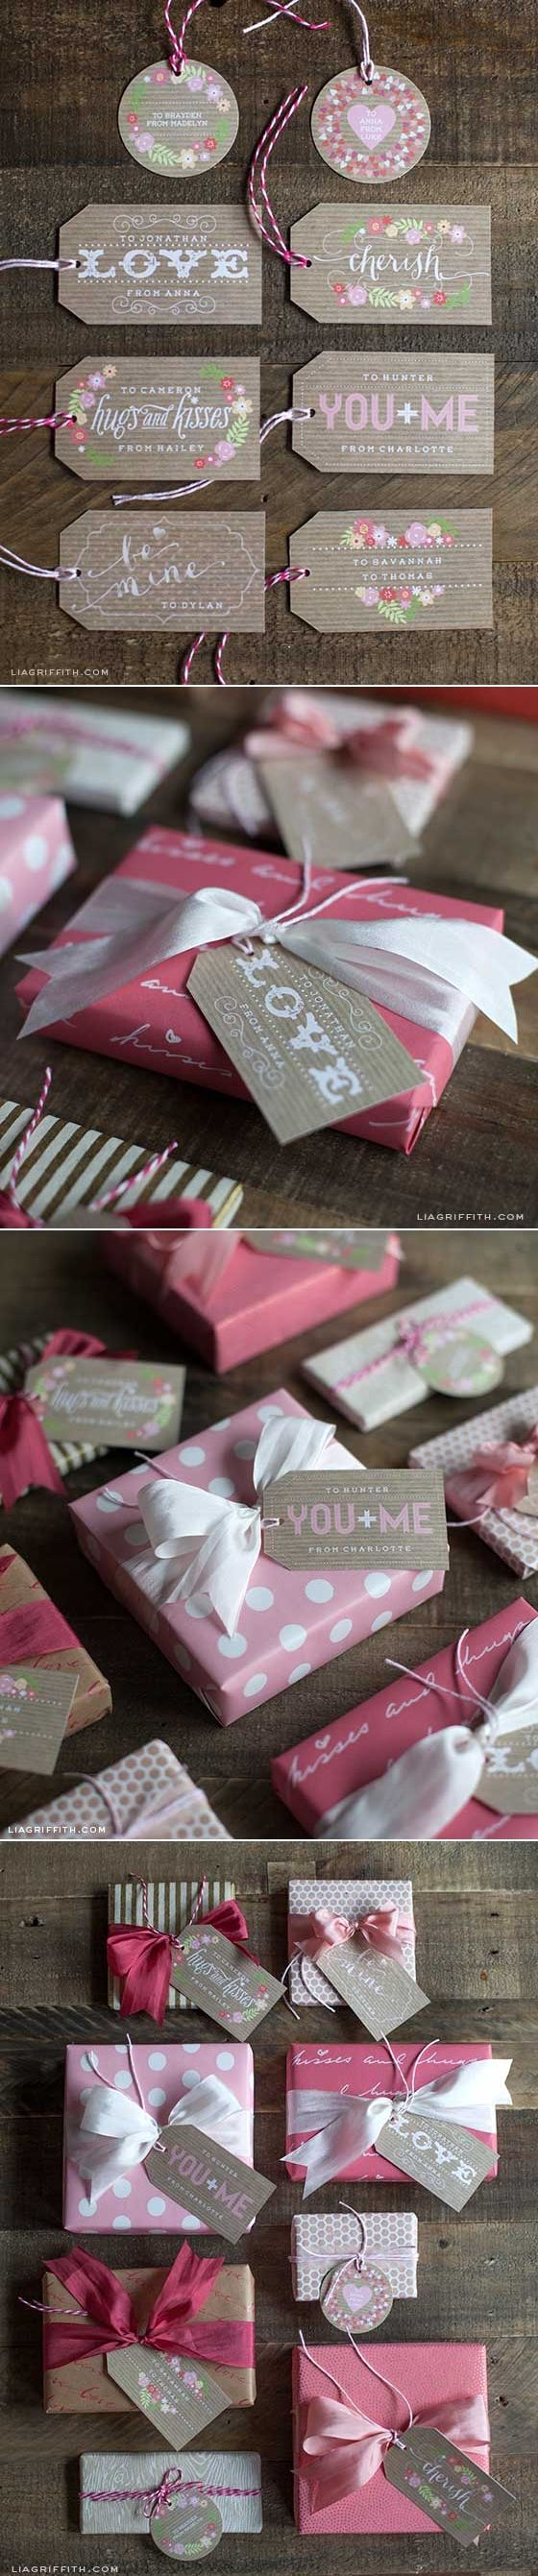 Printable Valentine's Day Gift Tags at www.liagriffith.com #gifts #gifttag #Valentinesday